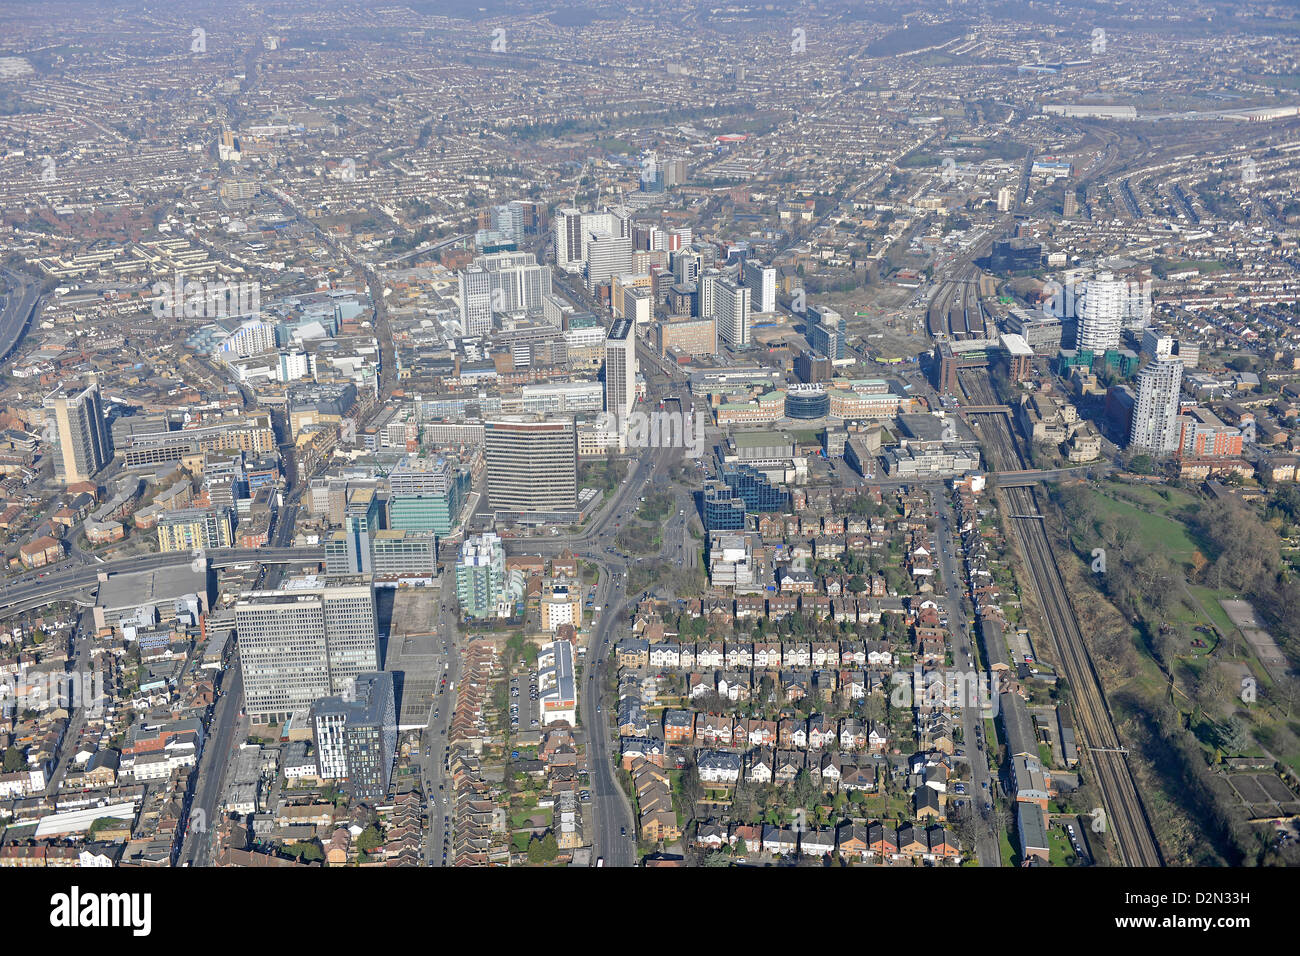 Aerial photograph of Croydon town centre - Stock Image